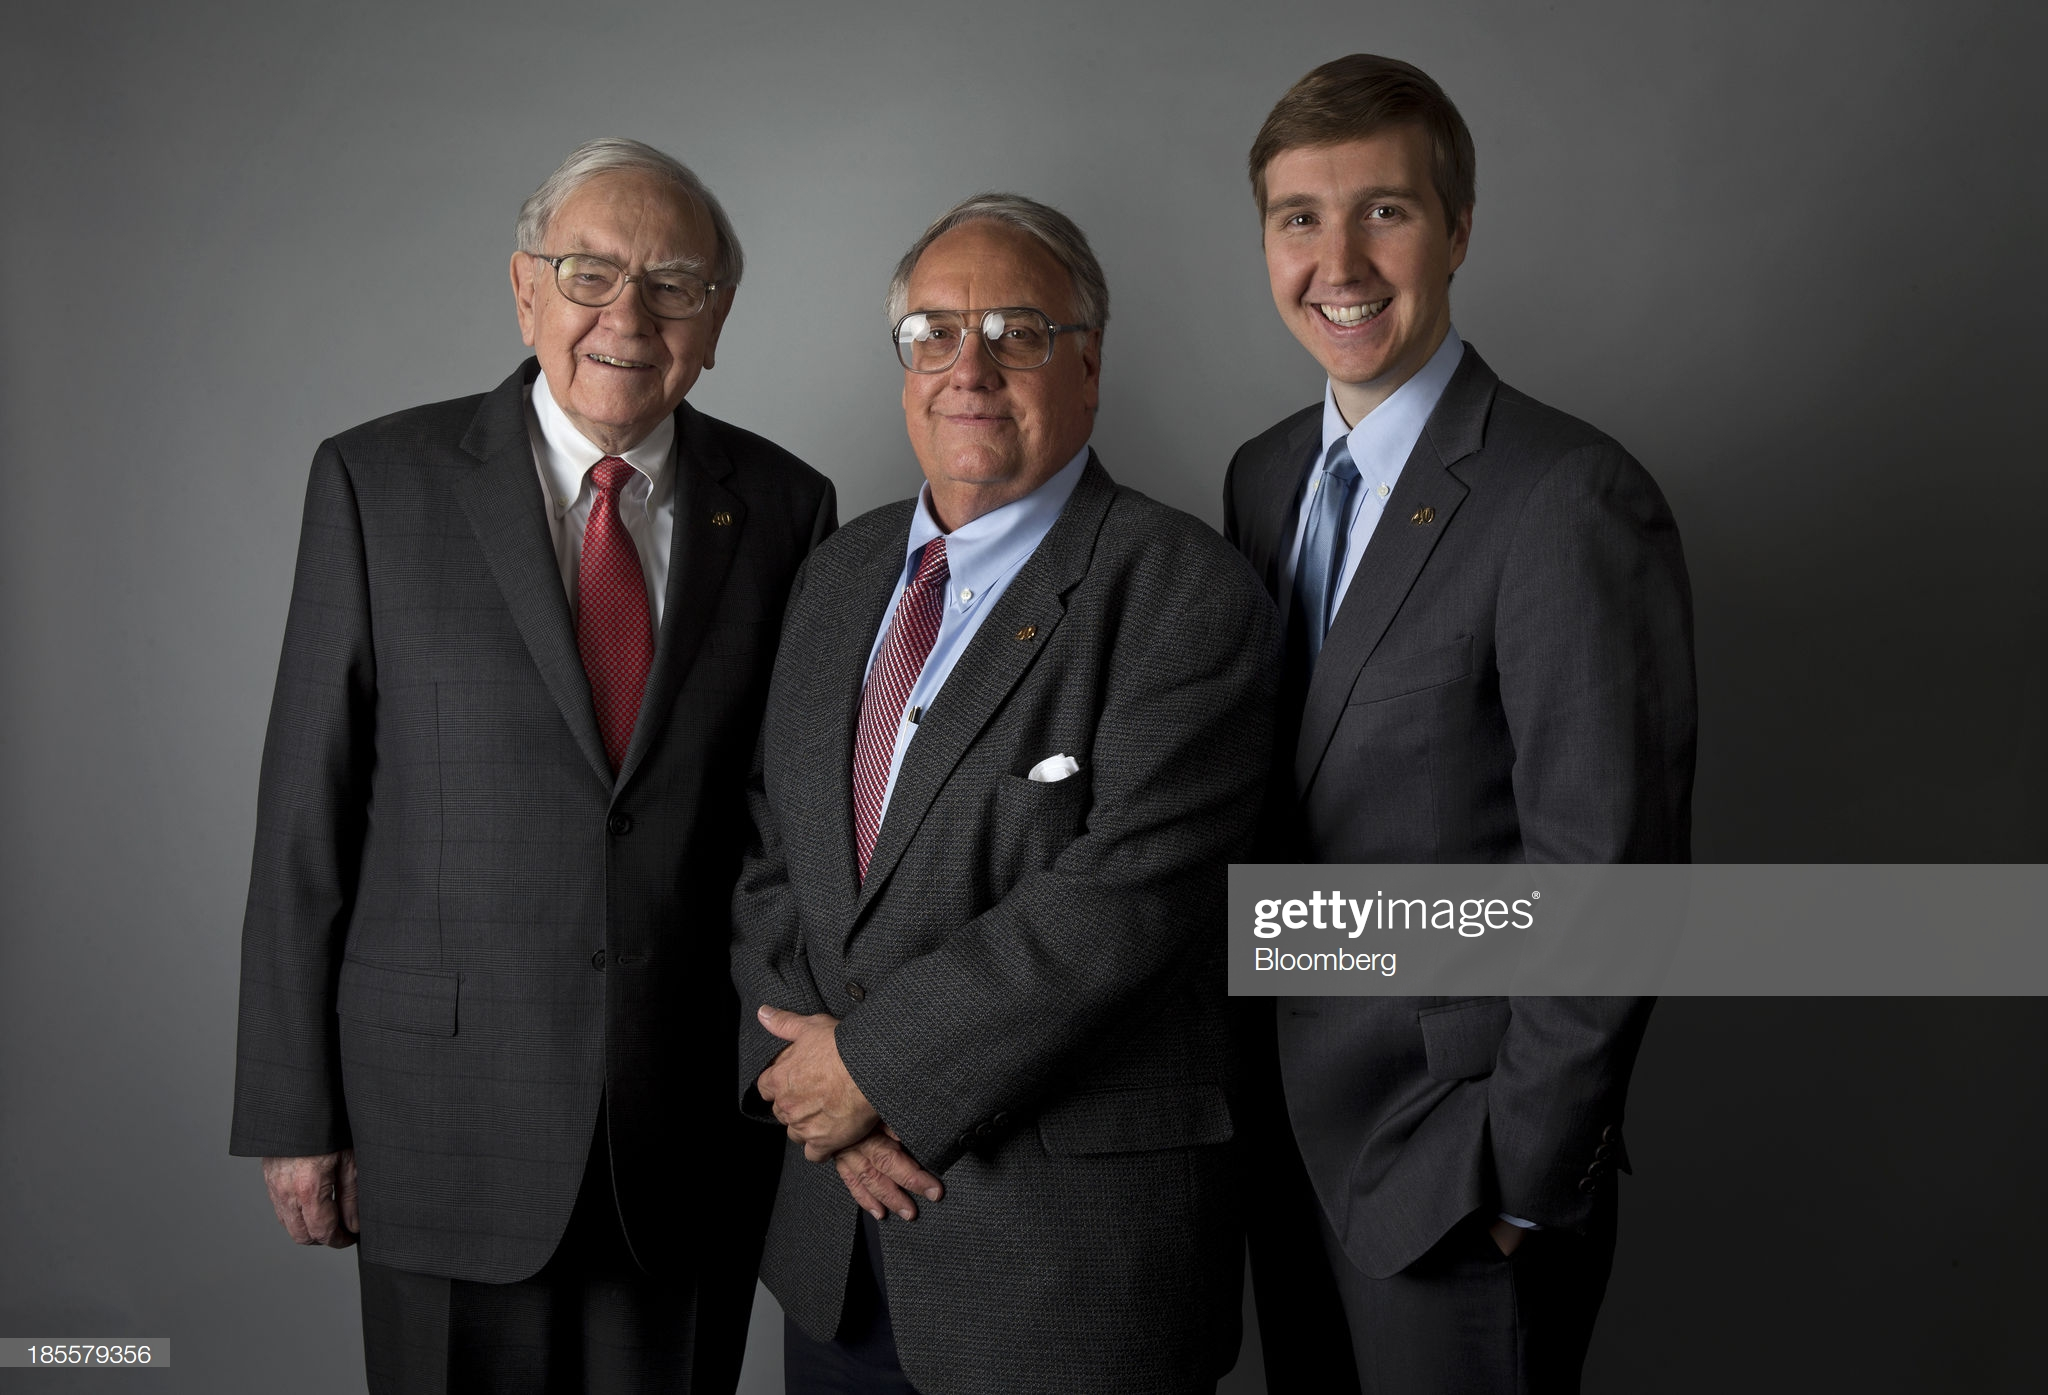 Exclusive Portraits Of Berkshire Hathaway Inc. Chief Executive Officer Warren Buffett : Fotografía de noticias